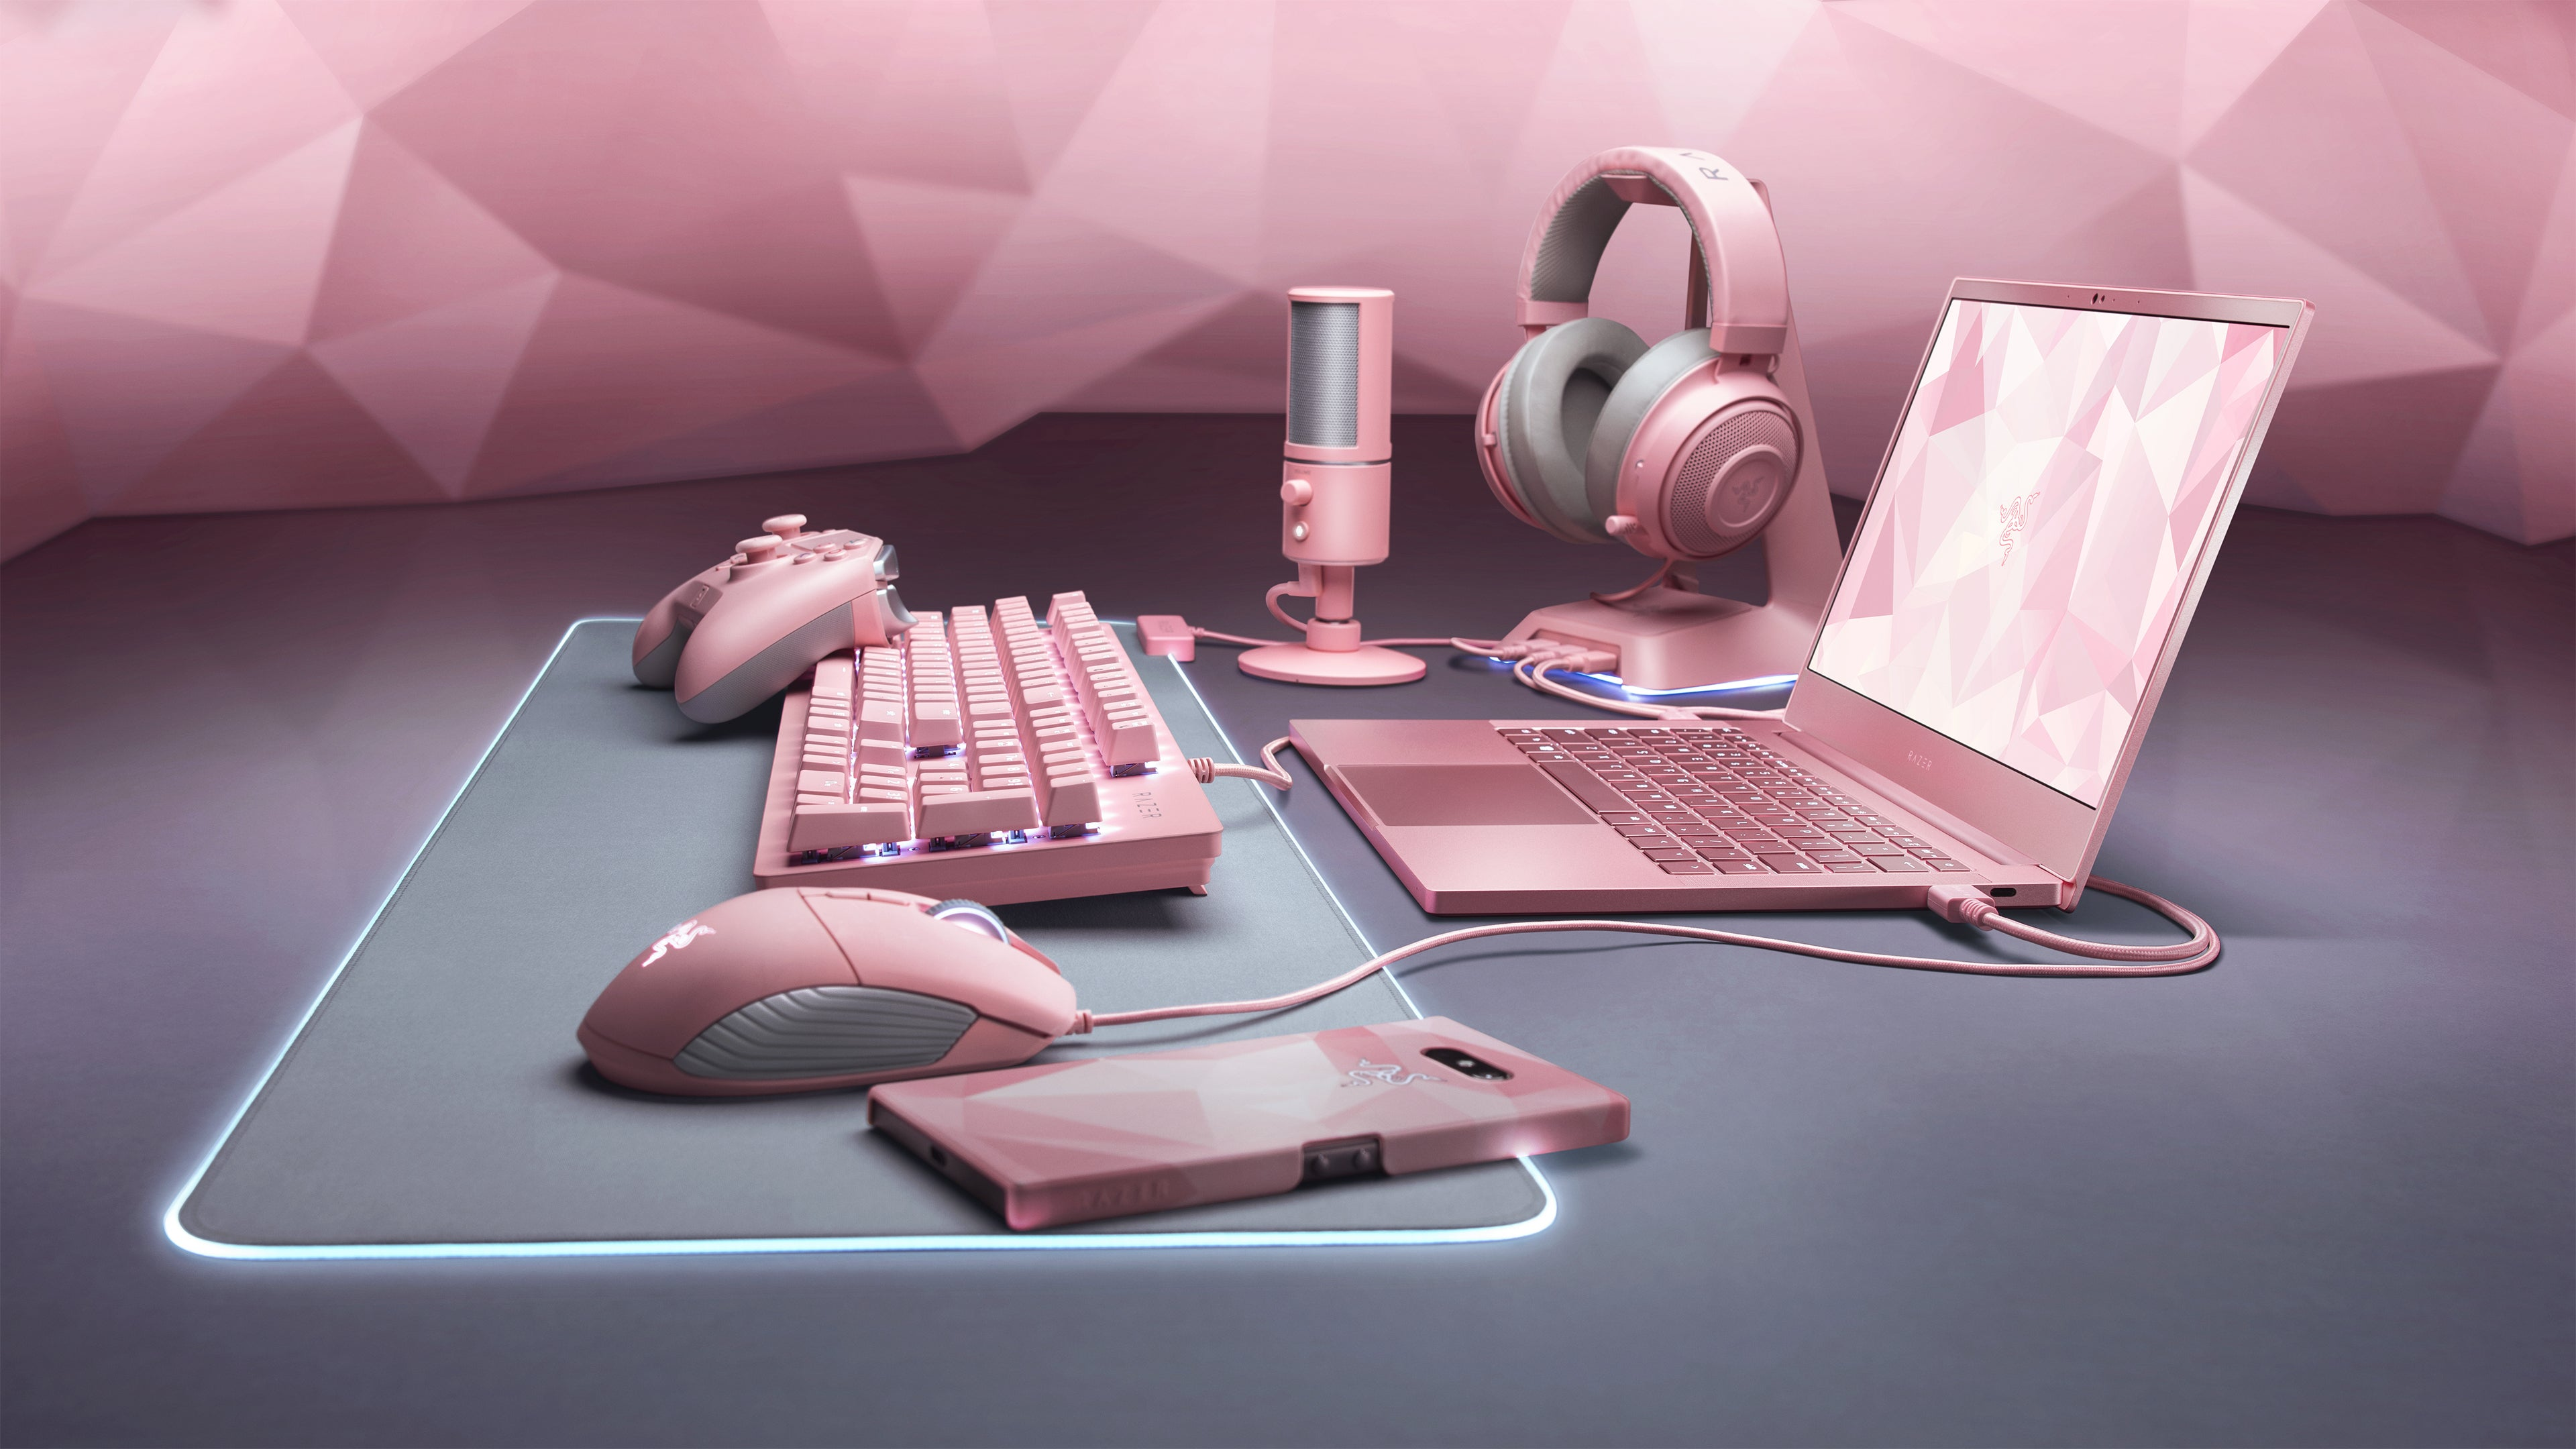 Razer Is Making Everything Pink Now, Including Laptops